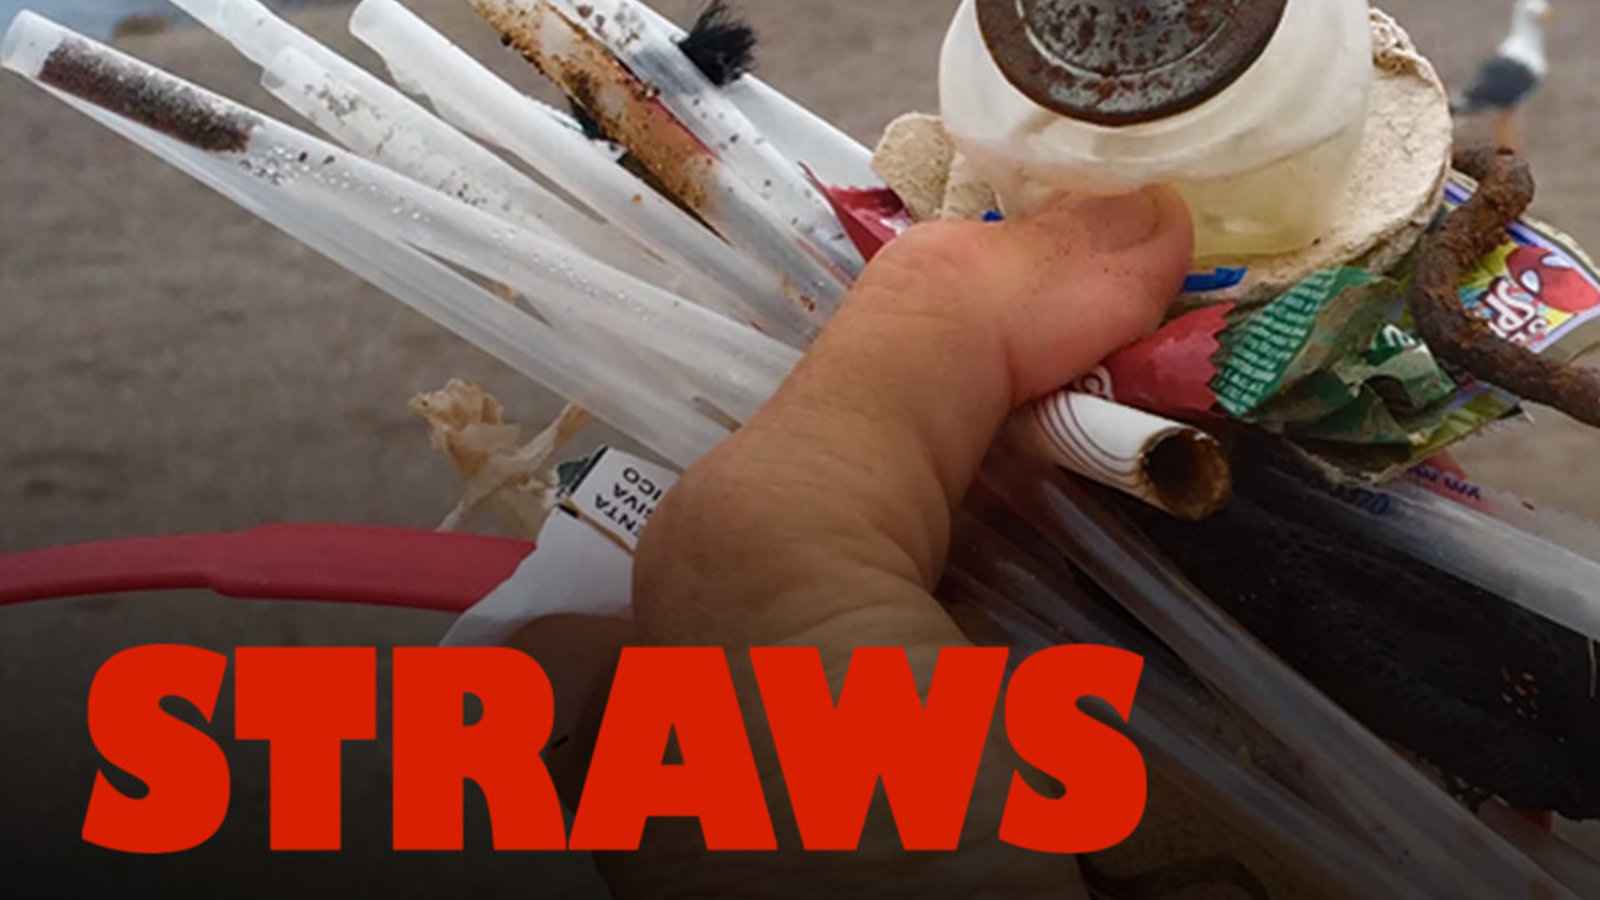 Straws - The Impact of Plastic Straws on our Environment